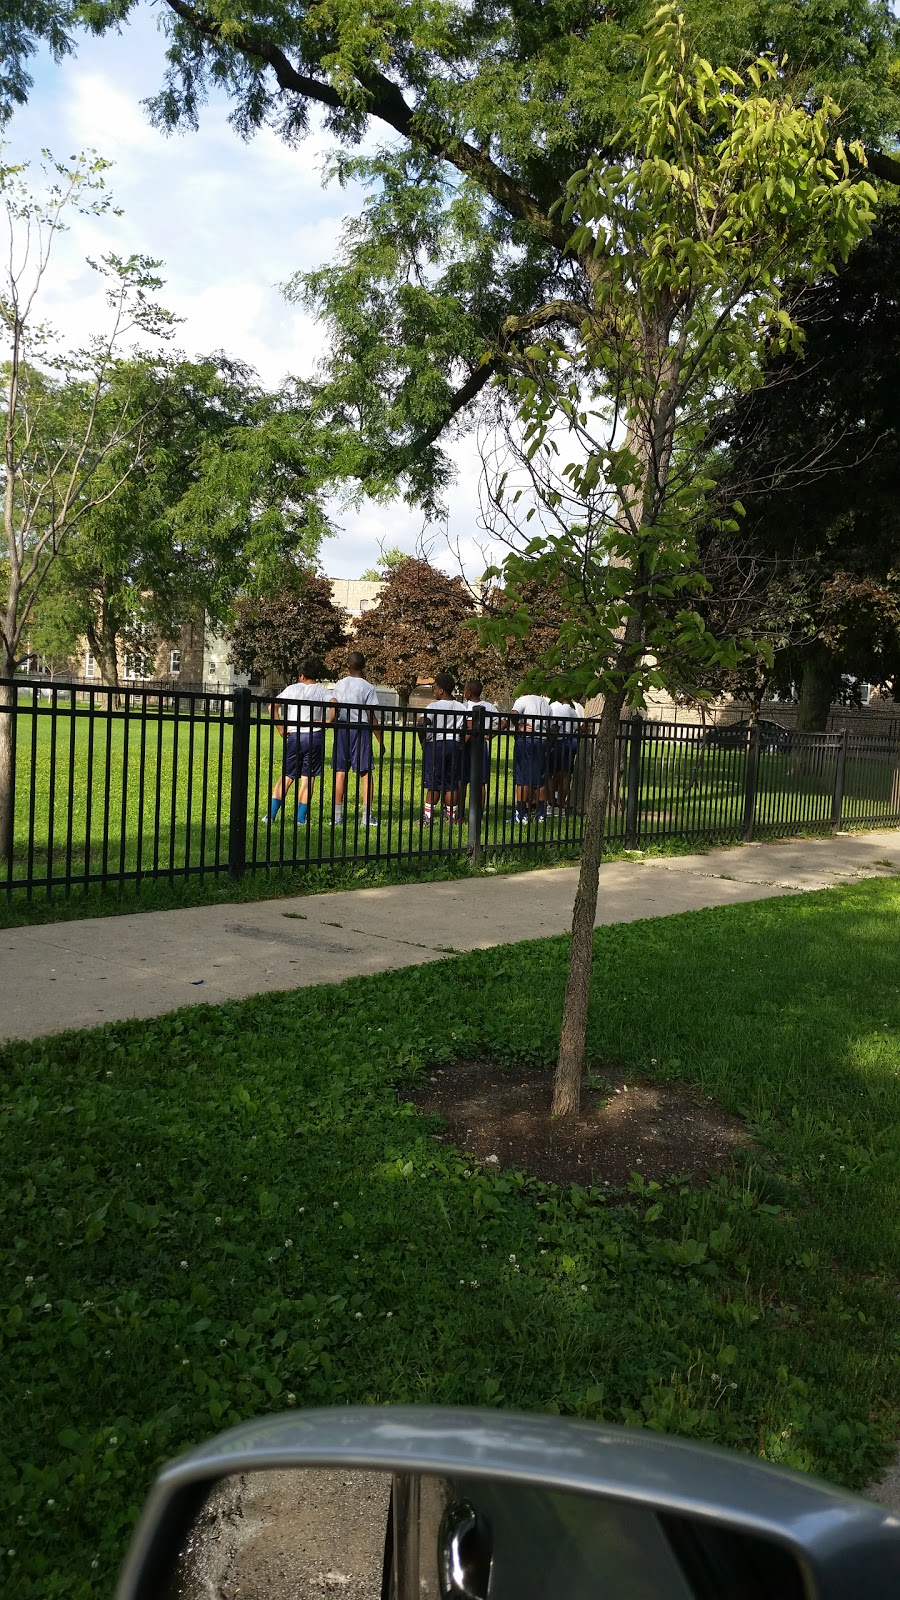 Moore (Maurice) Park - park    Photo 9 of 10   Address: 5085 W Adams St, Chicago, IL 60644, USA   Phone: (773) 287-0561